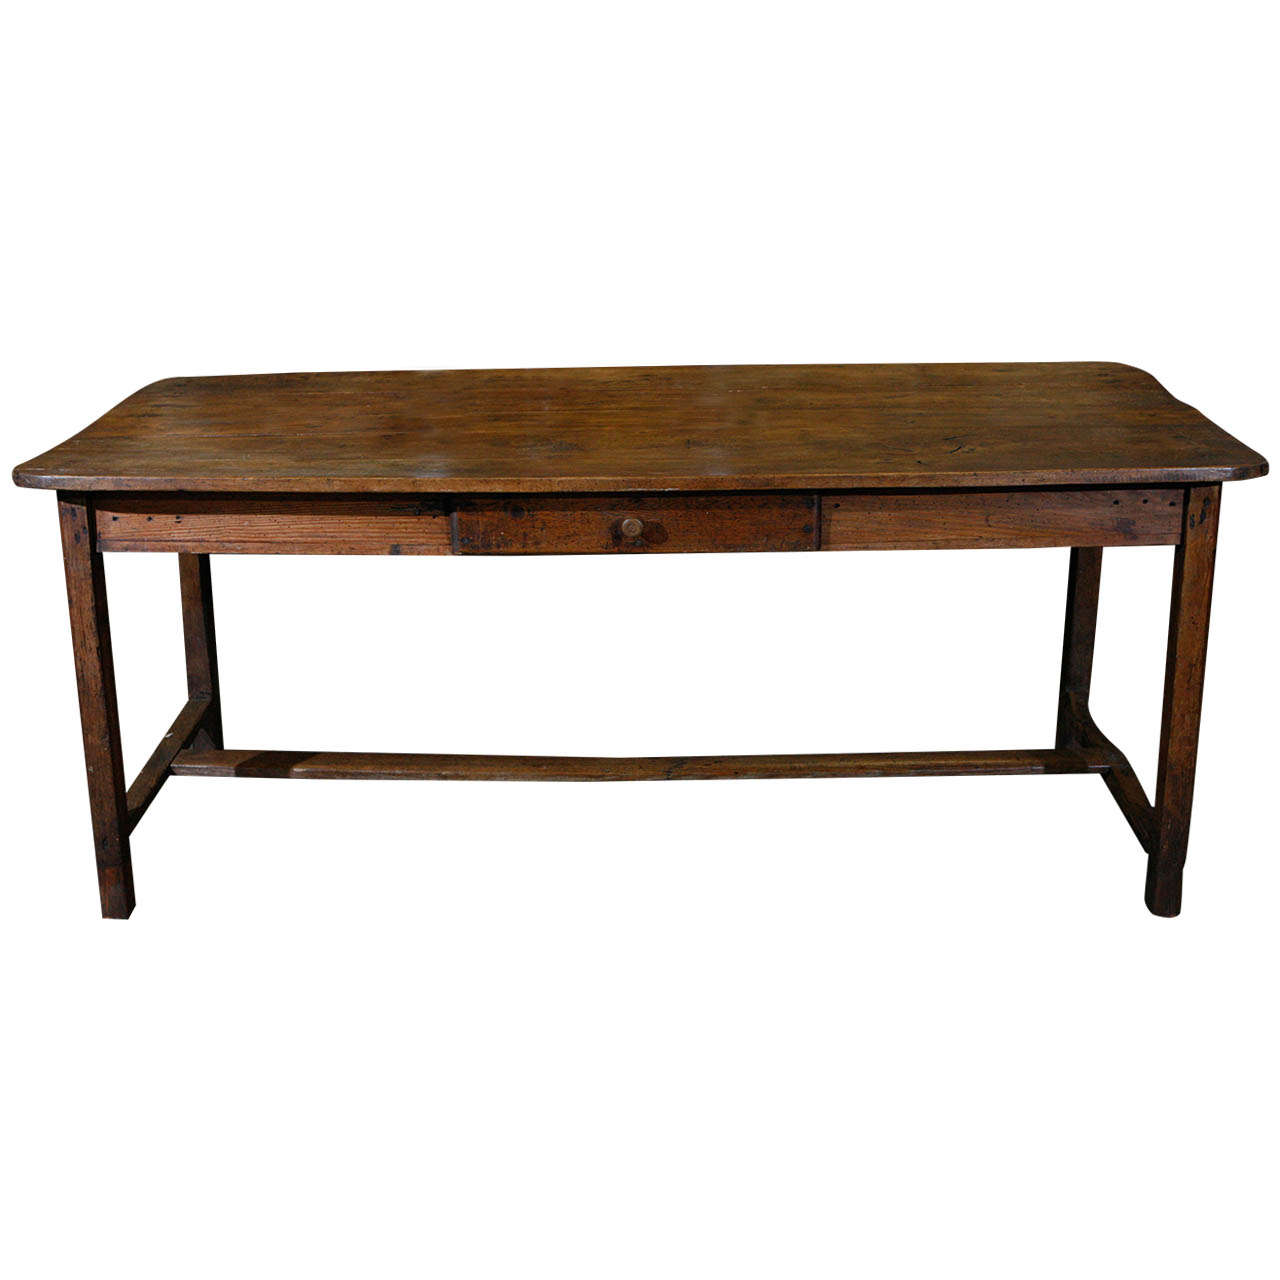 French country dining table desk with drawer at 1stdibs Dining table with drawer